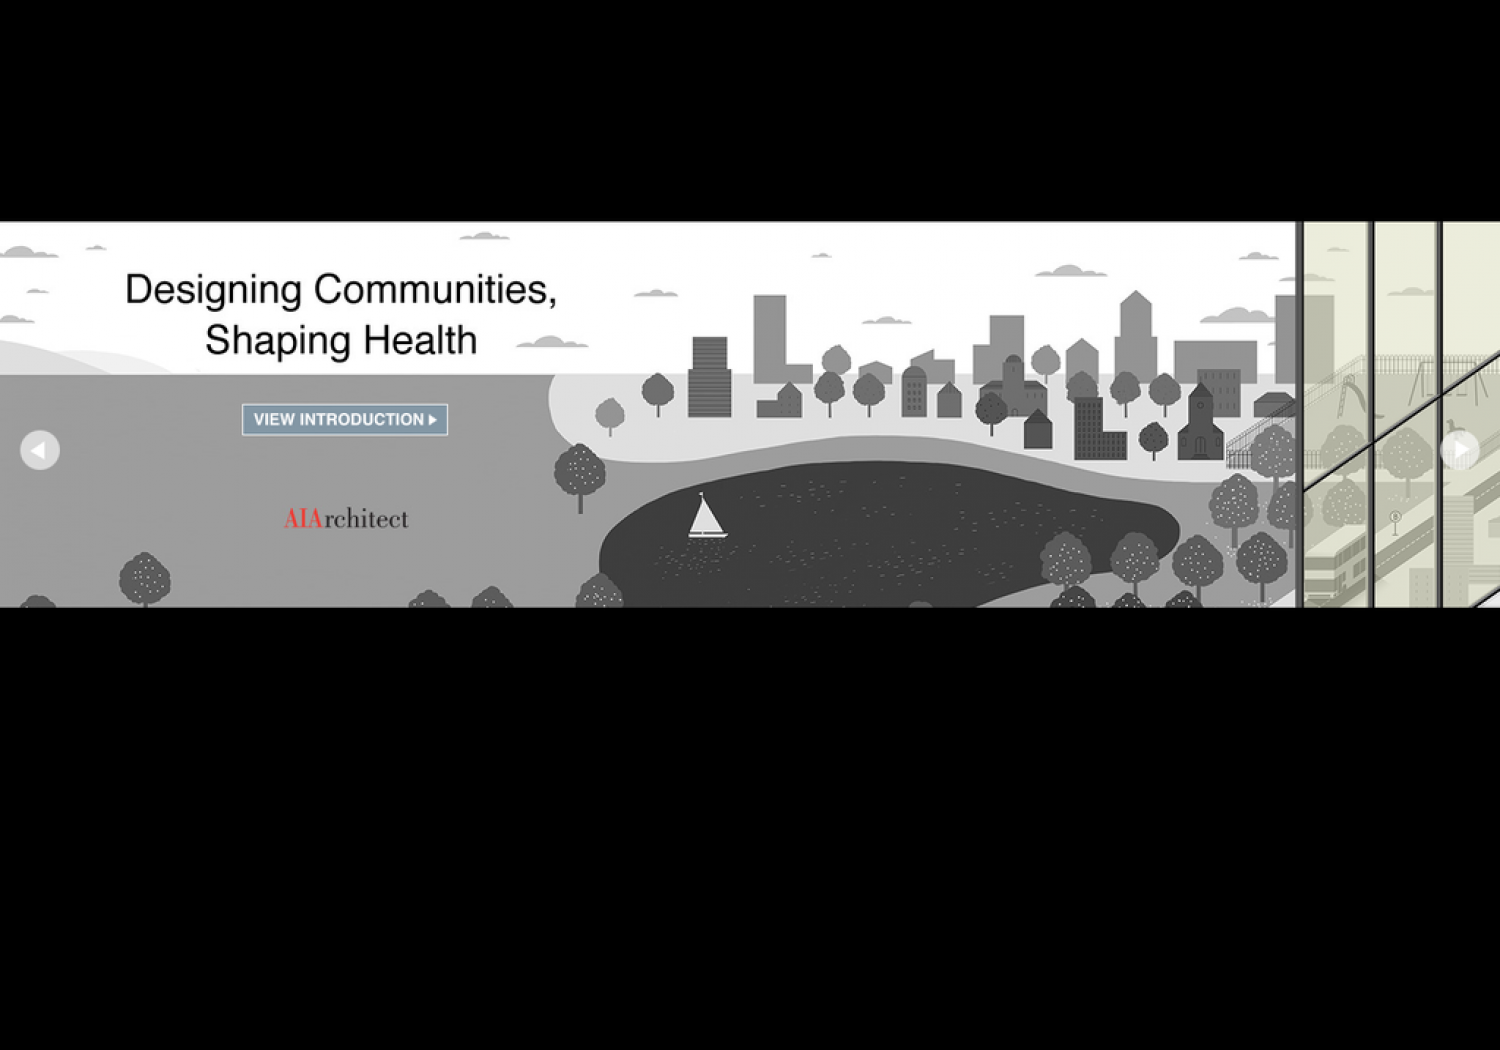 Designing Communities, Shaping Health Infographic